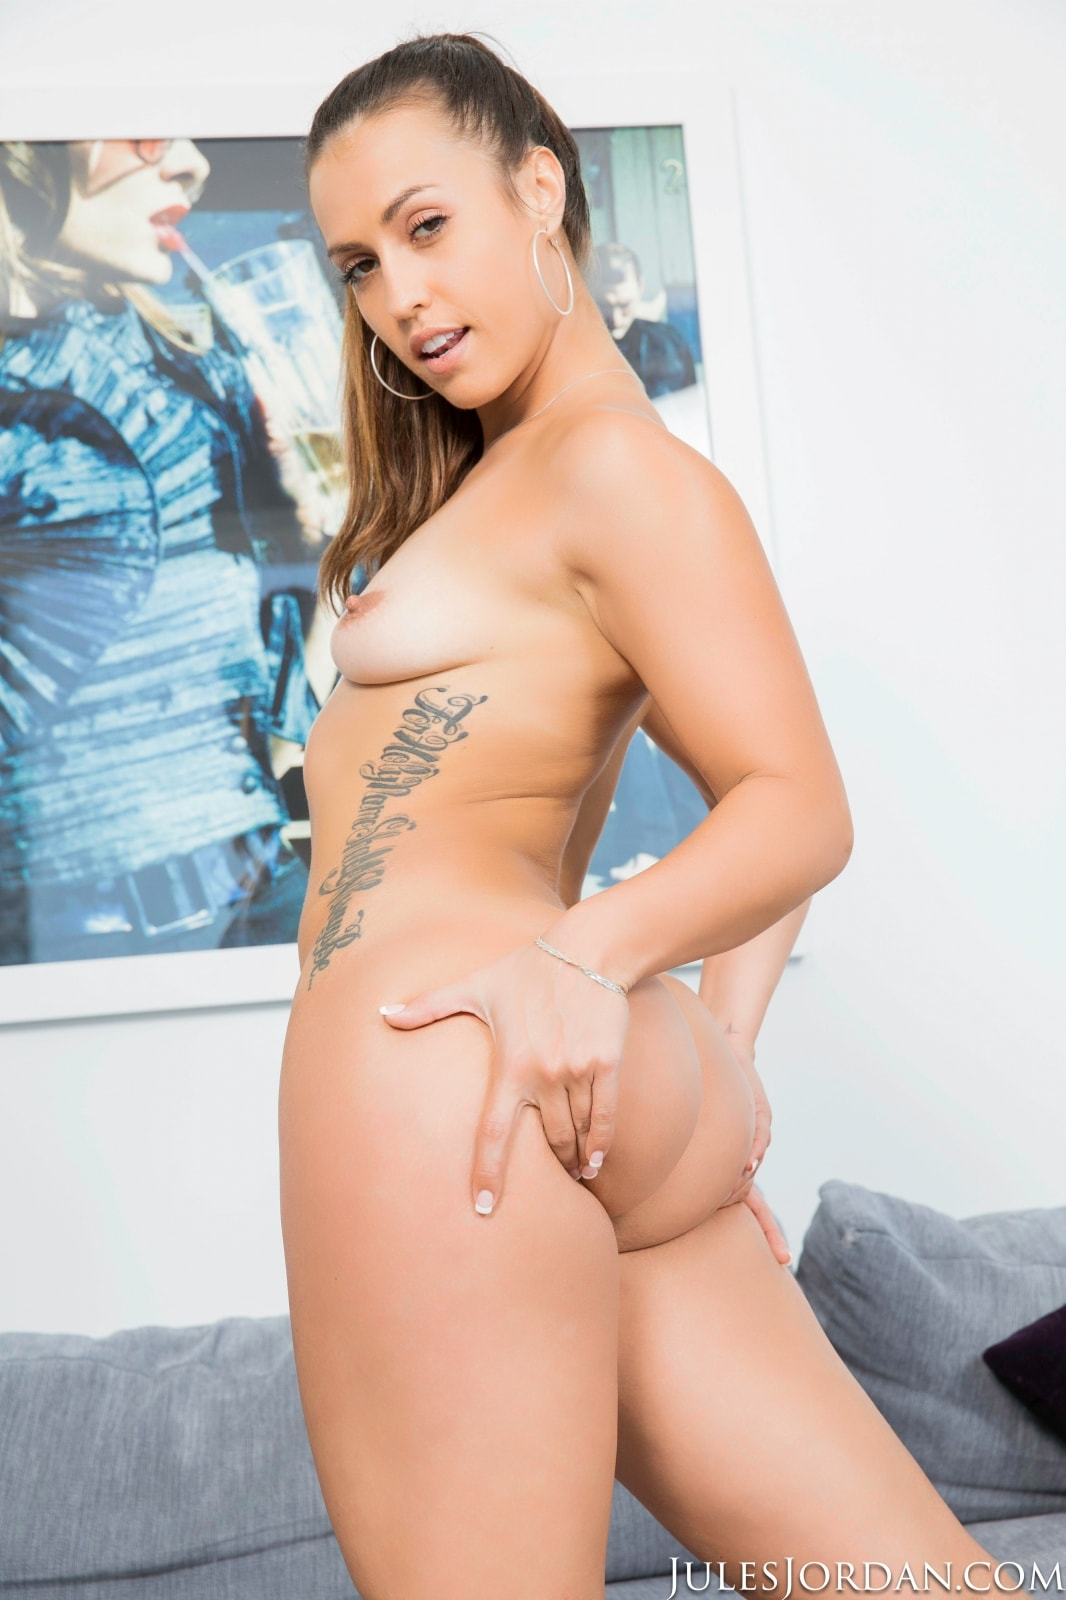 Jules Jordan 'Dredd 2' starring Kelsi Monroe (photo 7)